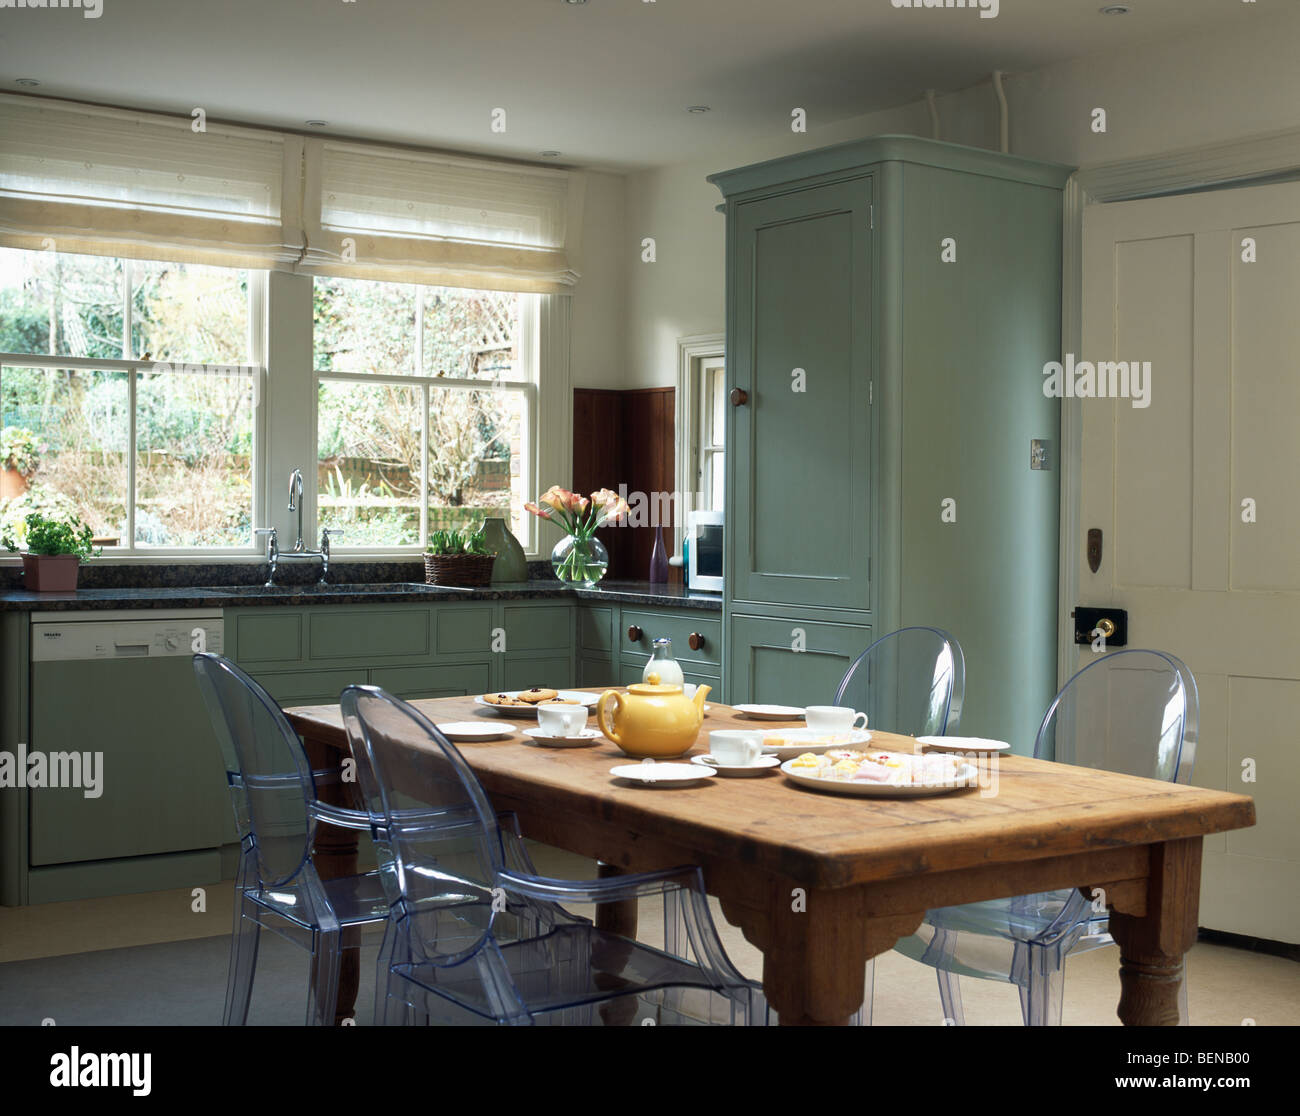 Philippe Starck Ghost Chairs At Old Pine Table In Country Kitchen Stock Photo Alamy